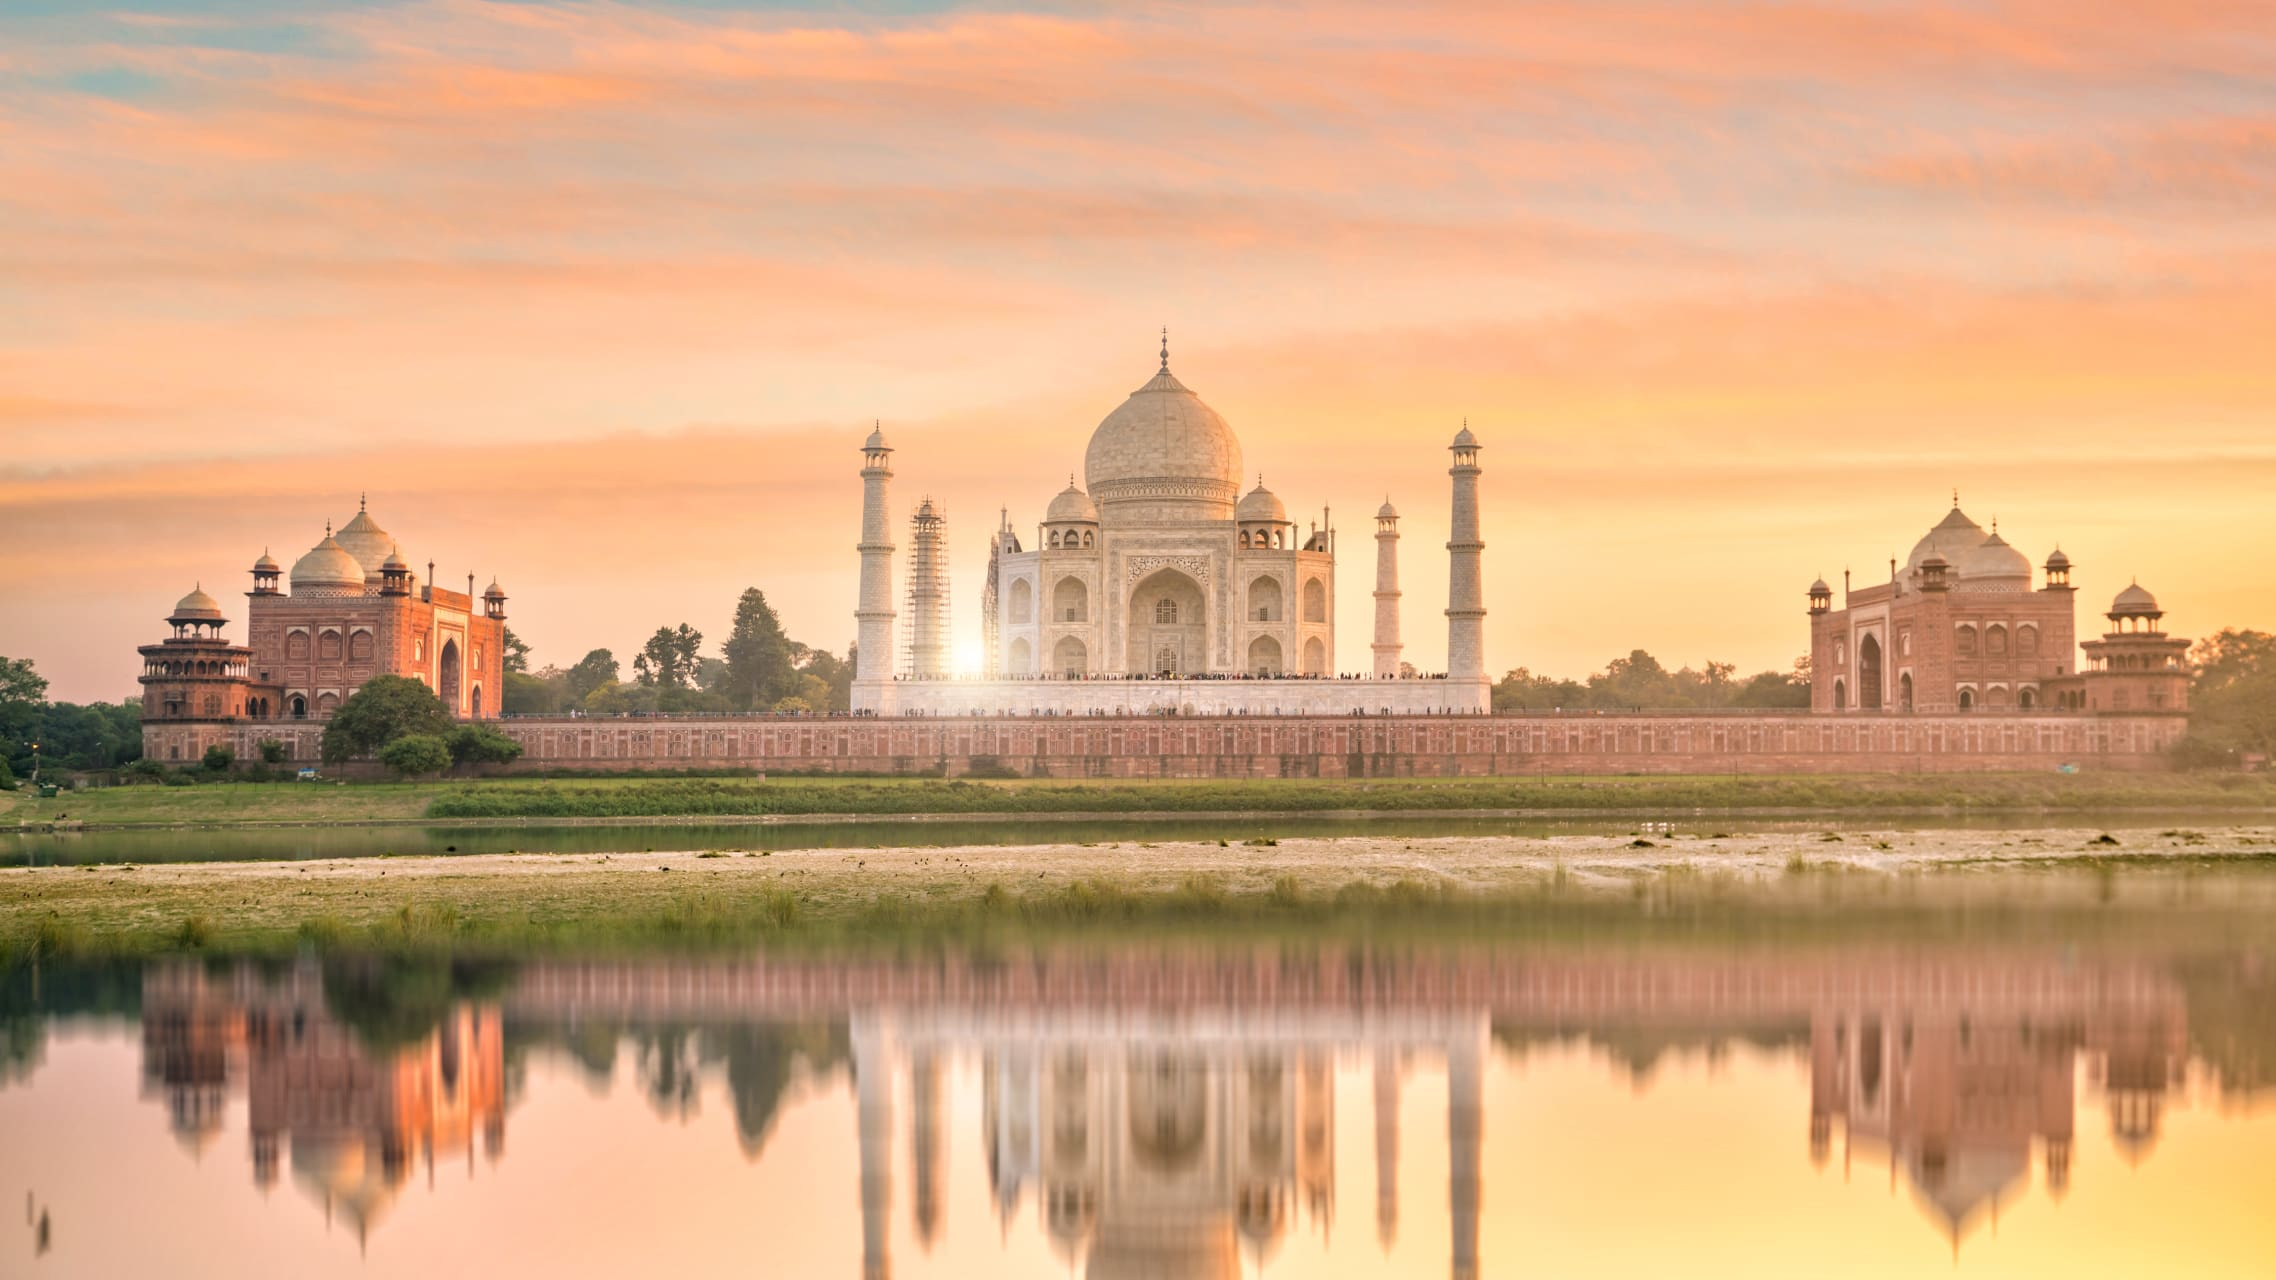 Agra cover image